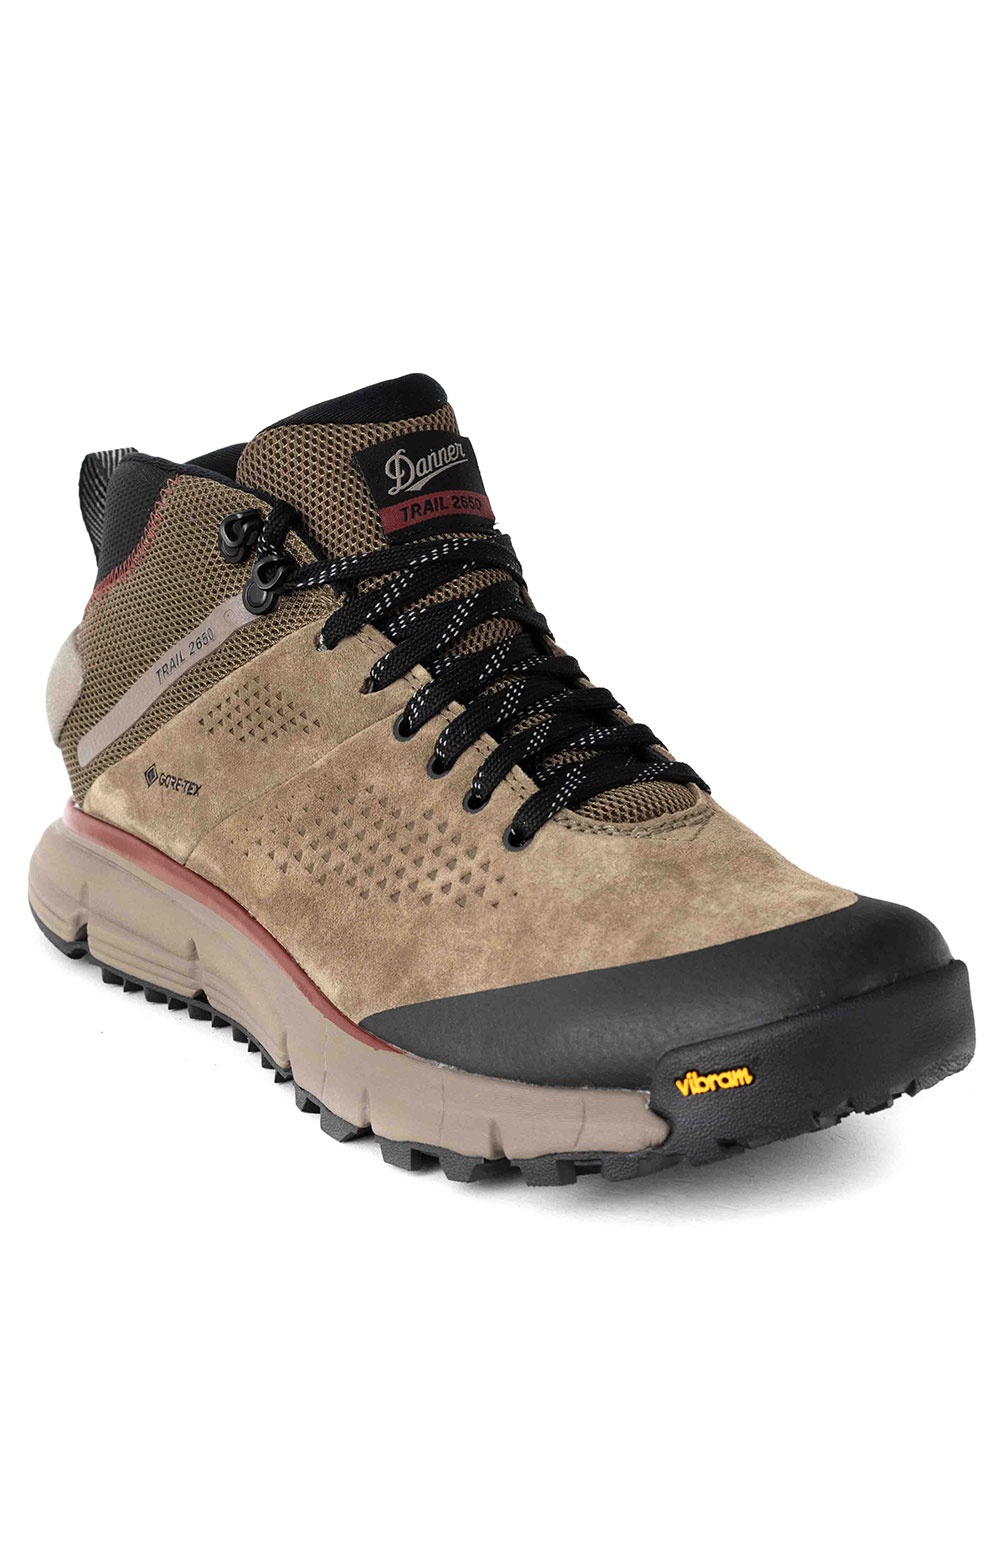 (61240) Trail 2650 GTX Mid Boots - Dusty Olive  3